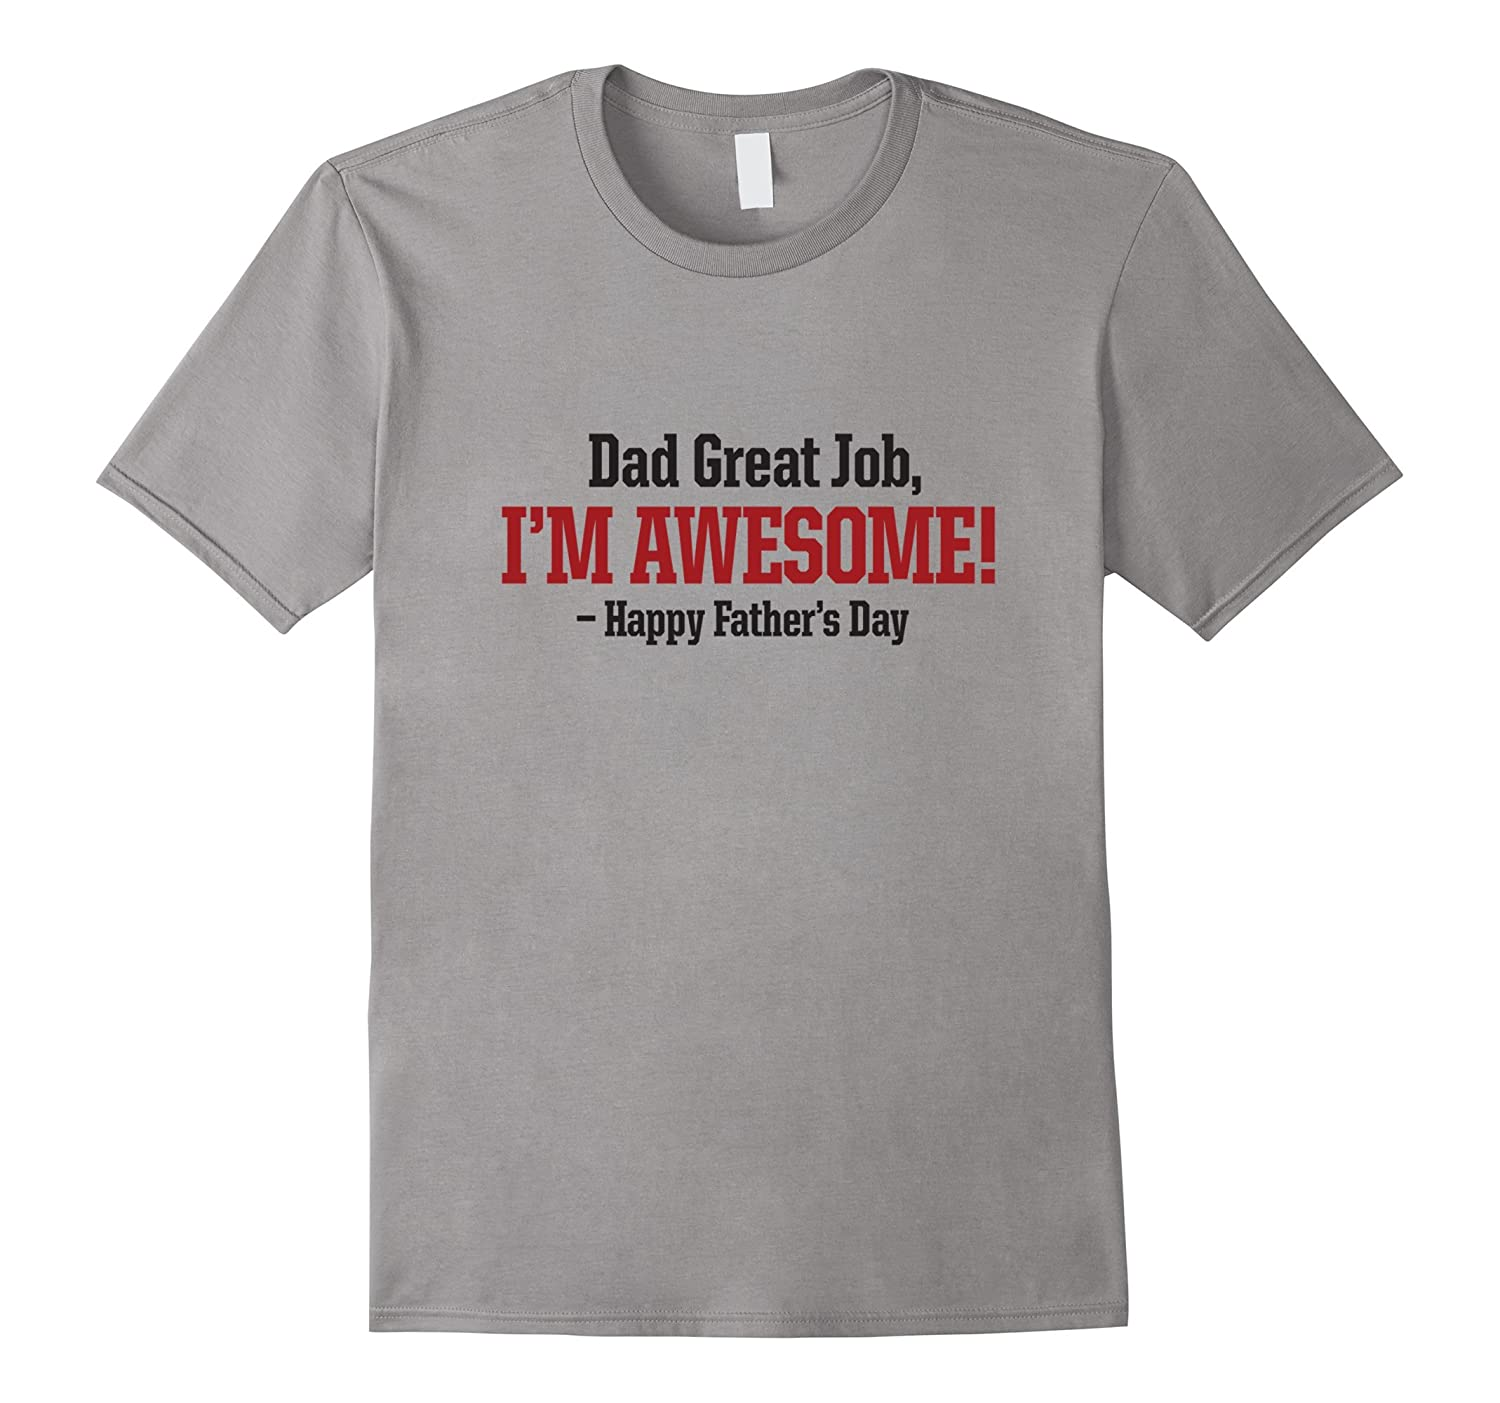 Dad Great Job I'm Awesome! Happy Father's Day T-shirt-Art